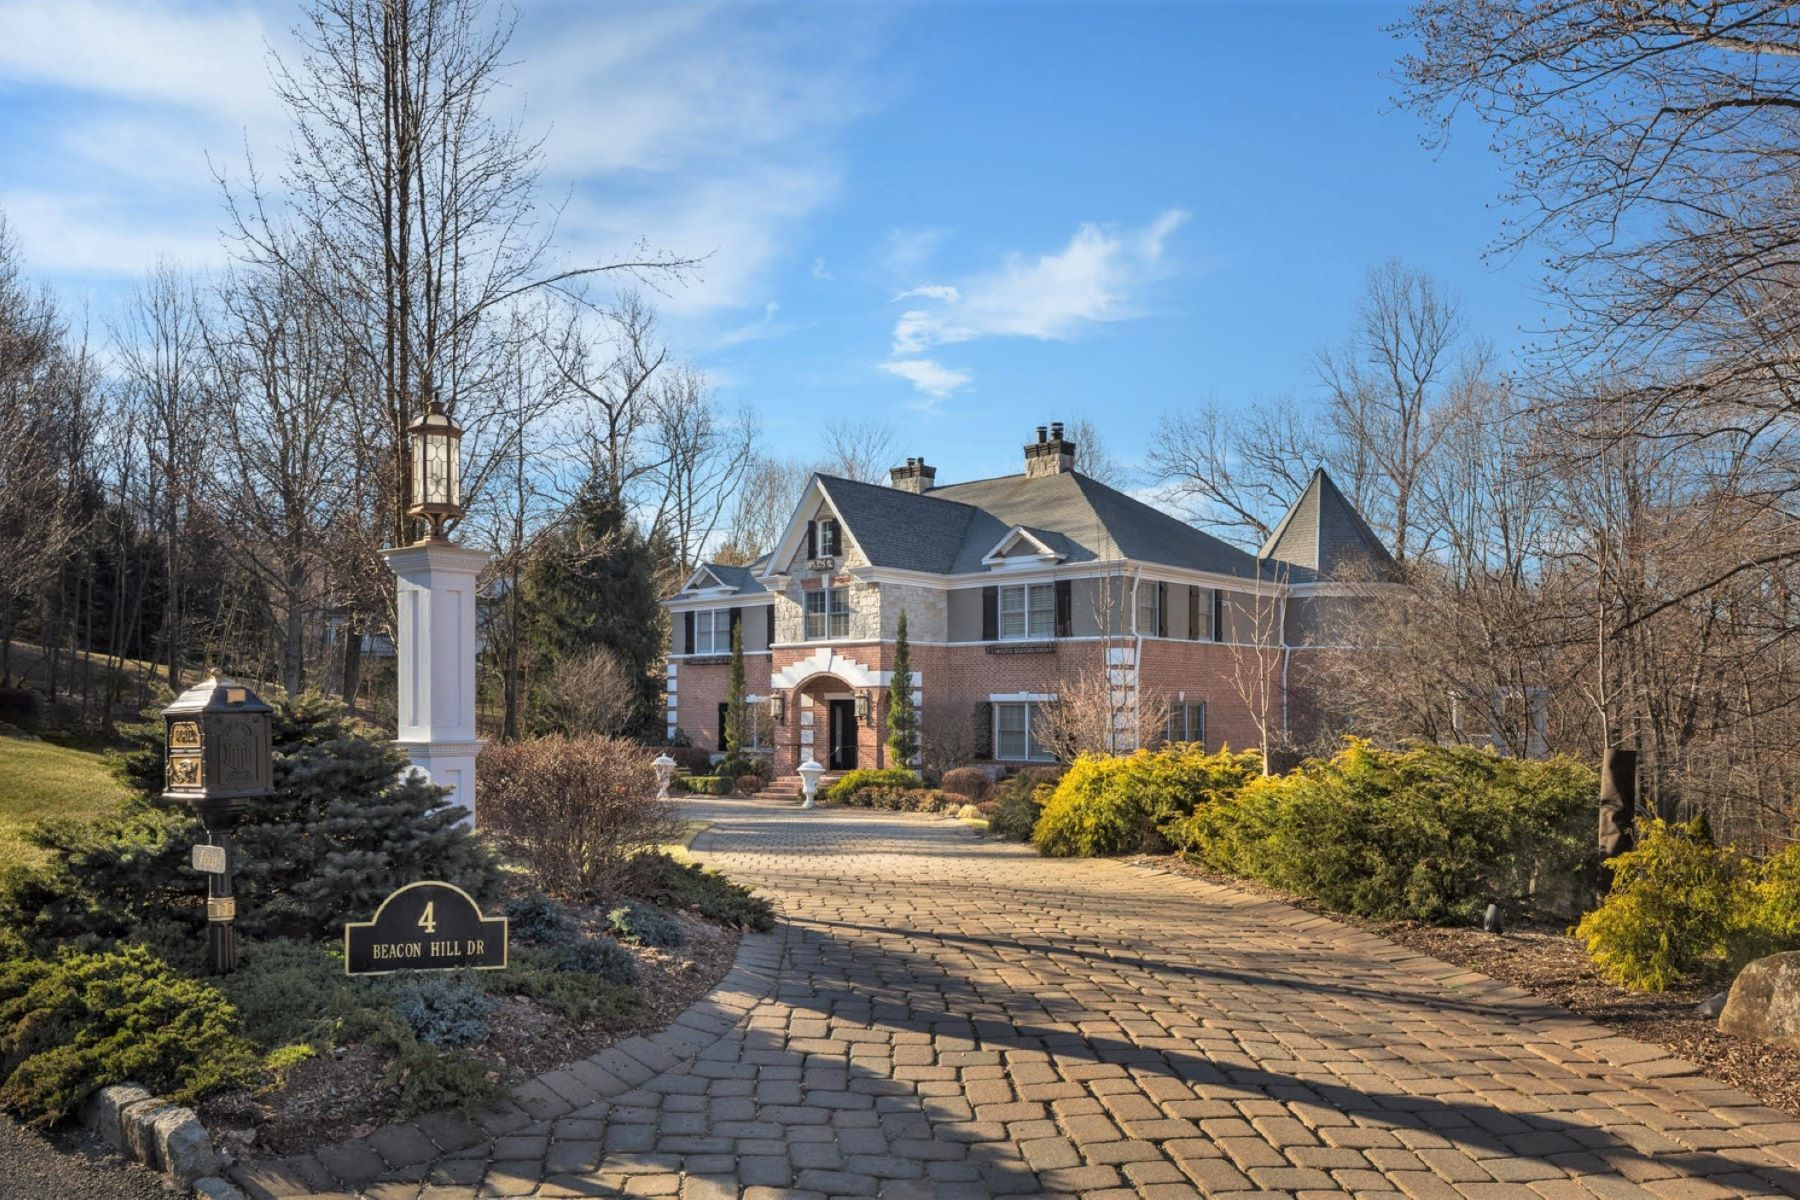 House for Sale at Stunning Beacon Hill Residence 4 Beacon Hill Drive Chester, New Jersey 07930 United States